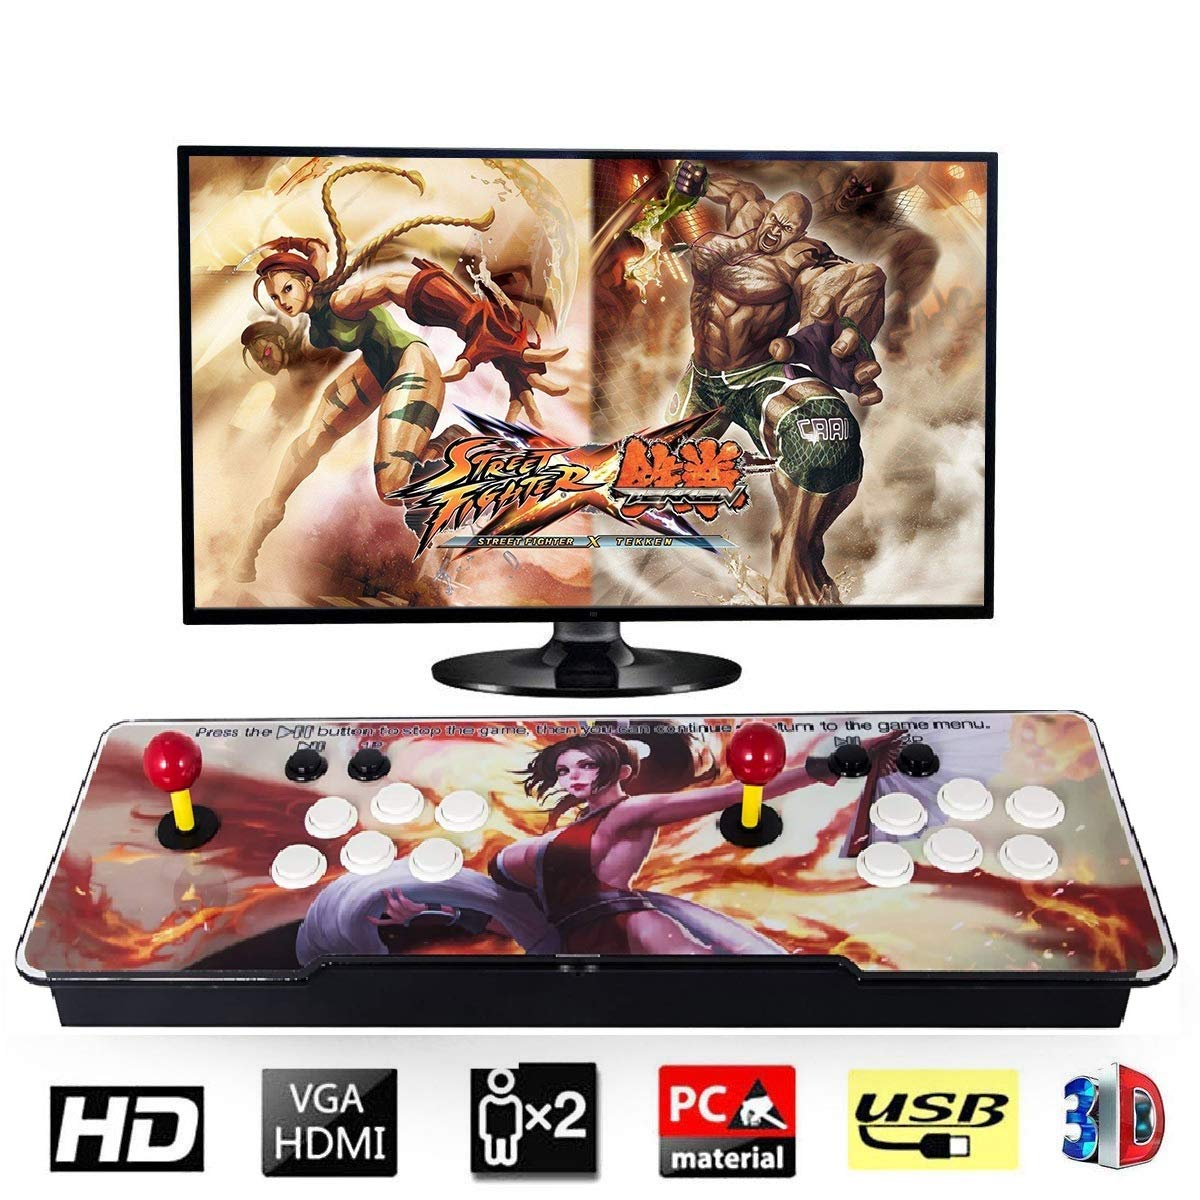 Happybuy 1500 Classic Arcade Game Machine 2 Players Pandoras Box 9s 1280x720 Full HD Video Game Console with Arcade Joystick Support HDMI VGA Output